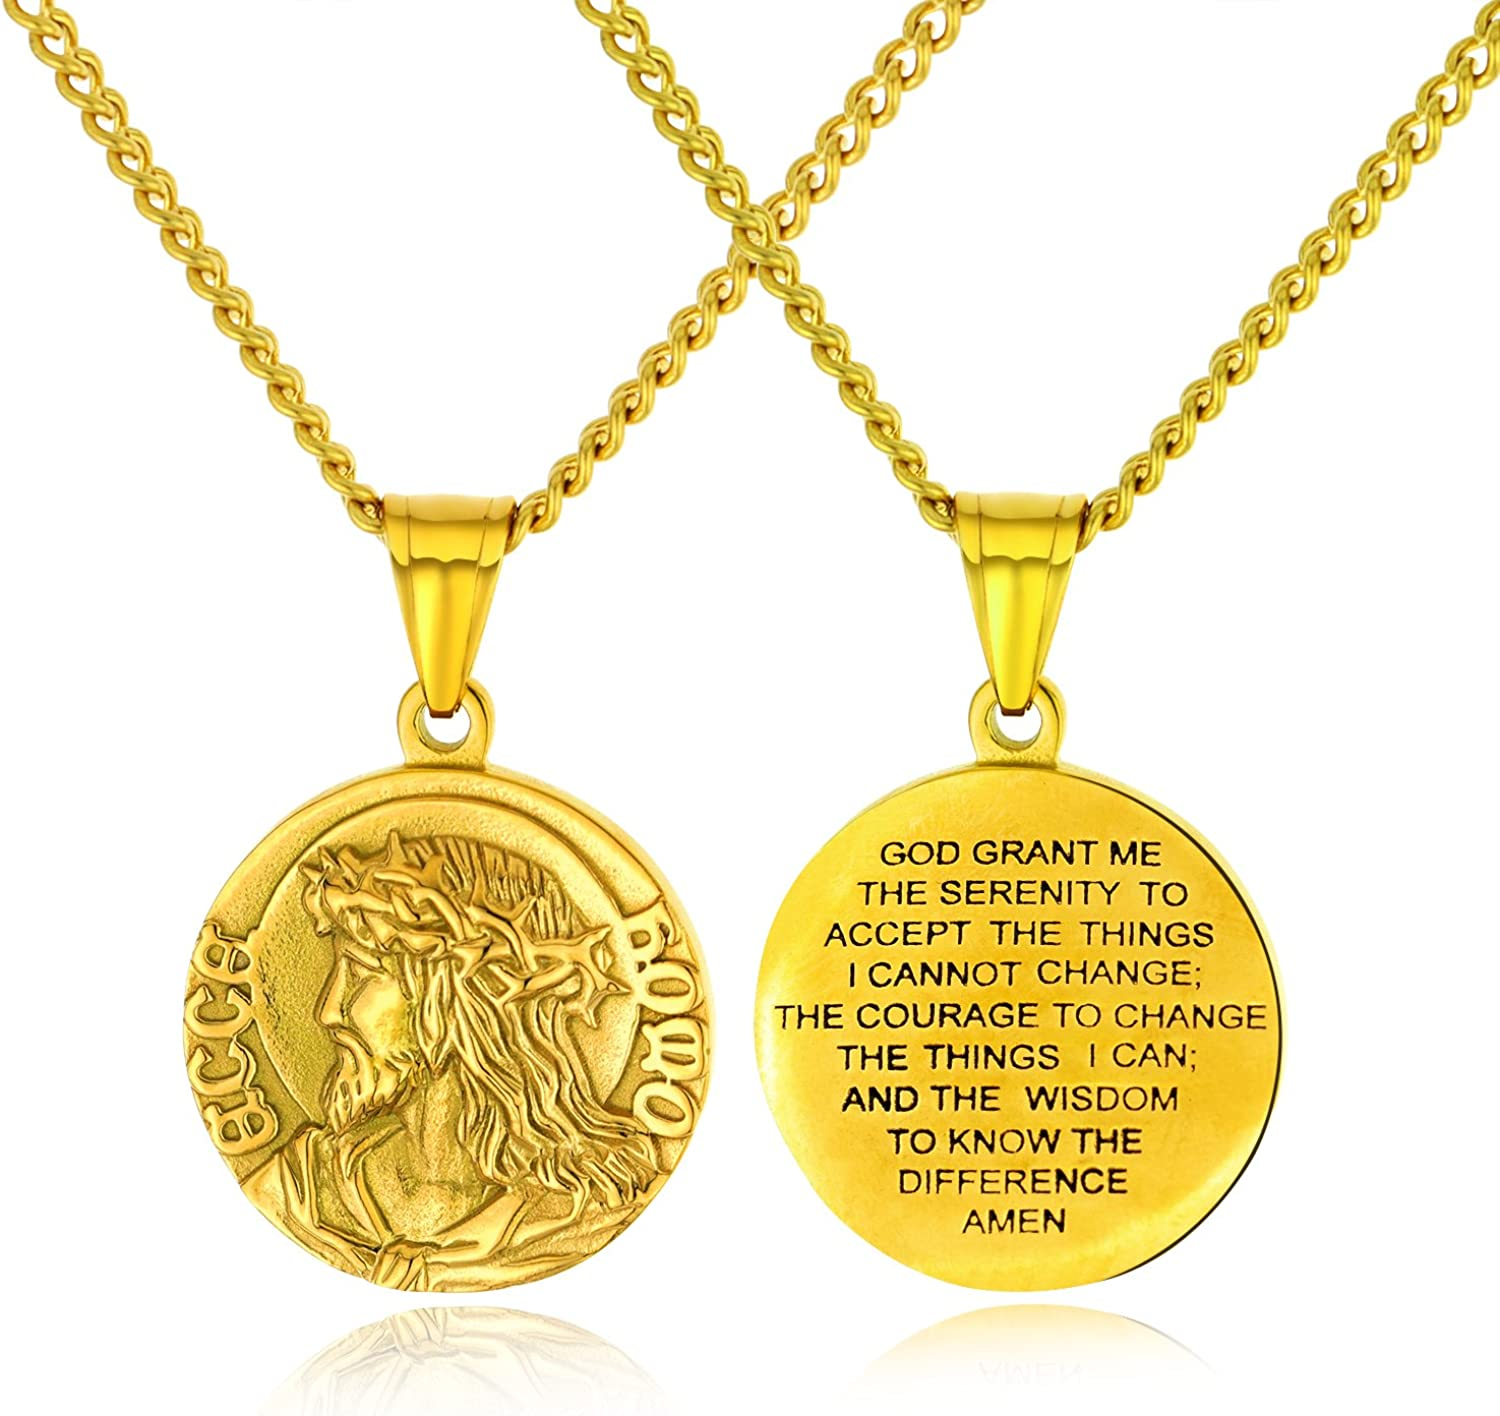 24k gold plated head of jesus crown of thorns pendant USA Made Lifetime Warranty